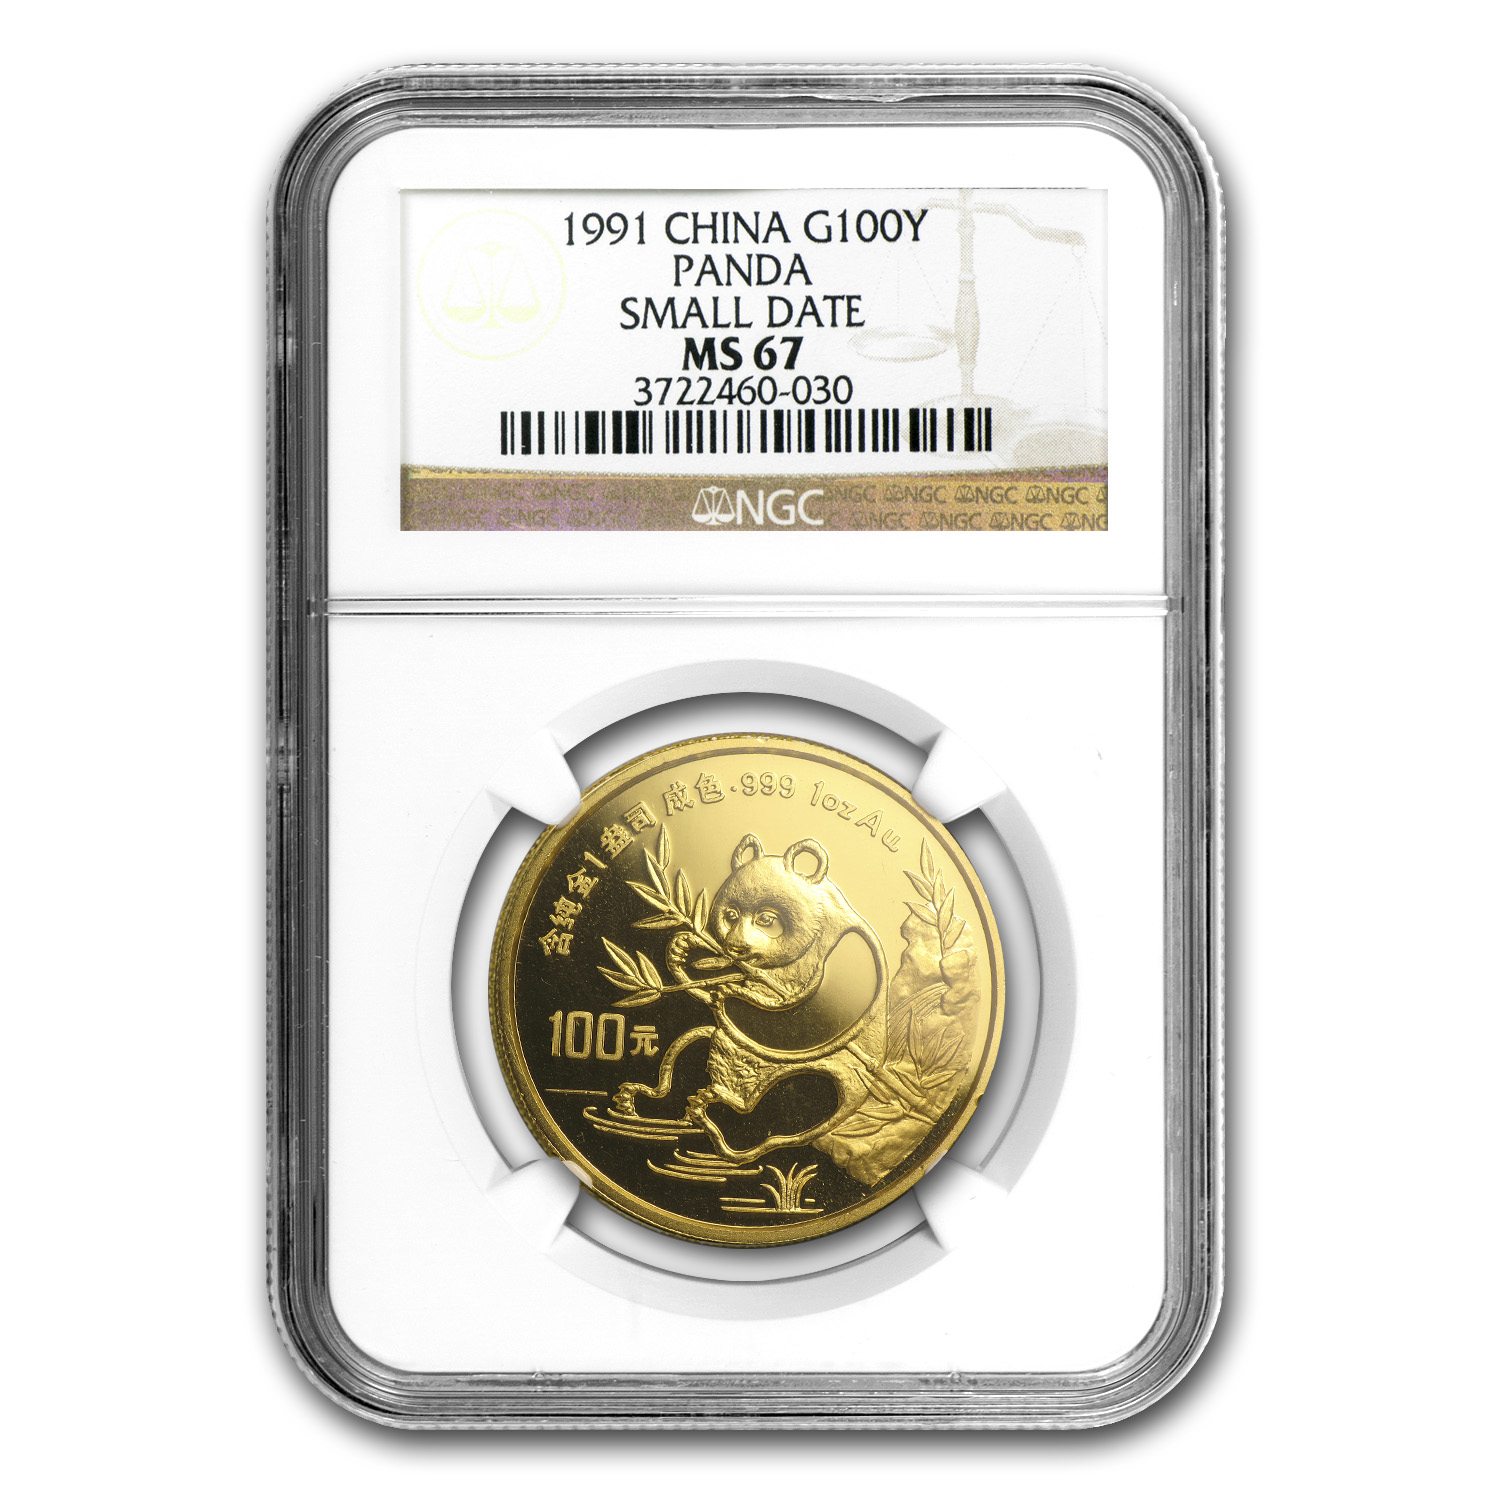 1991 China 1 oz Gold Panda Small Date MS-67 NGC